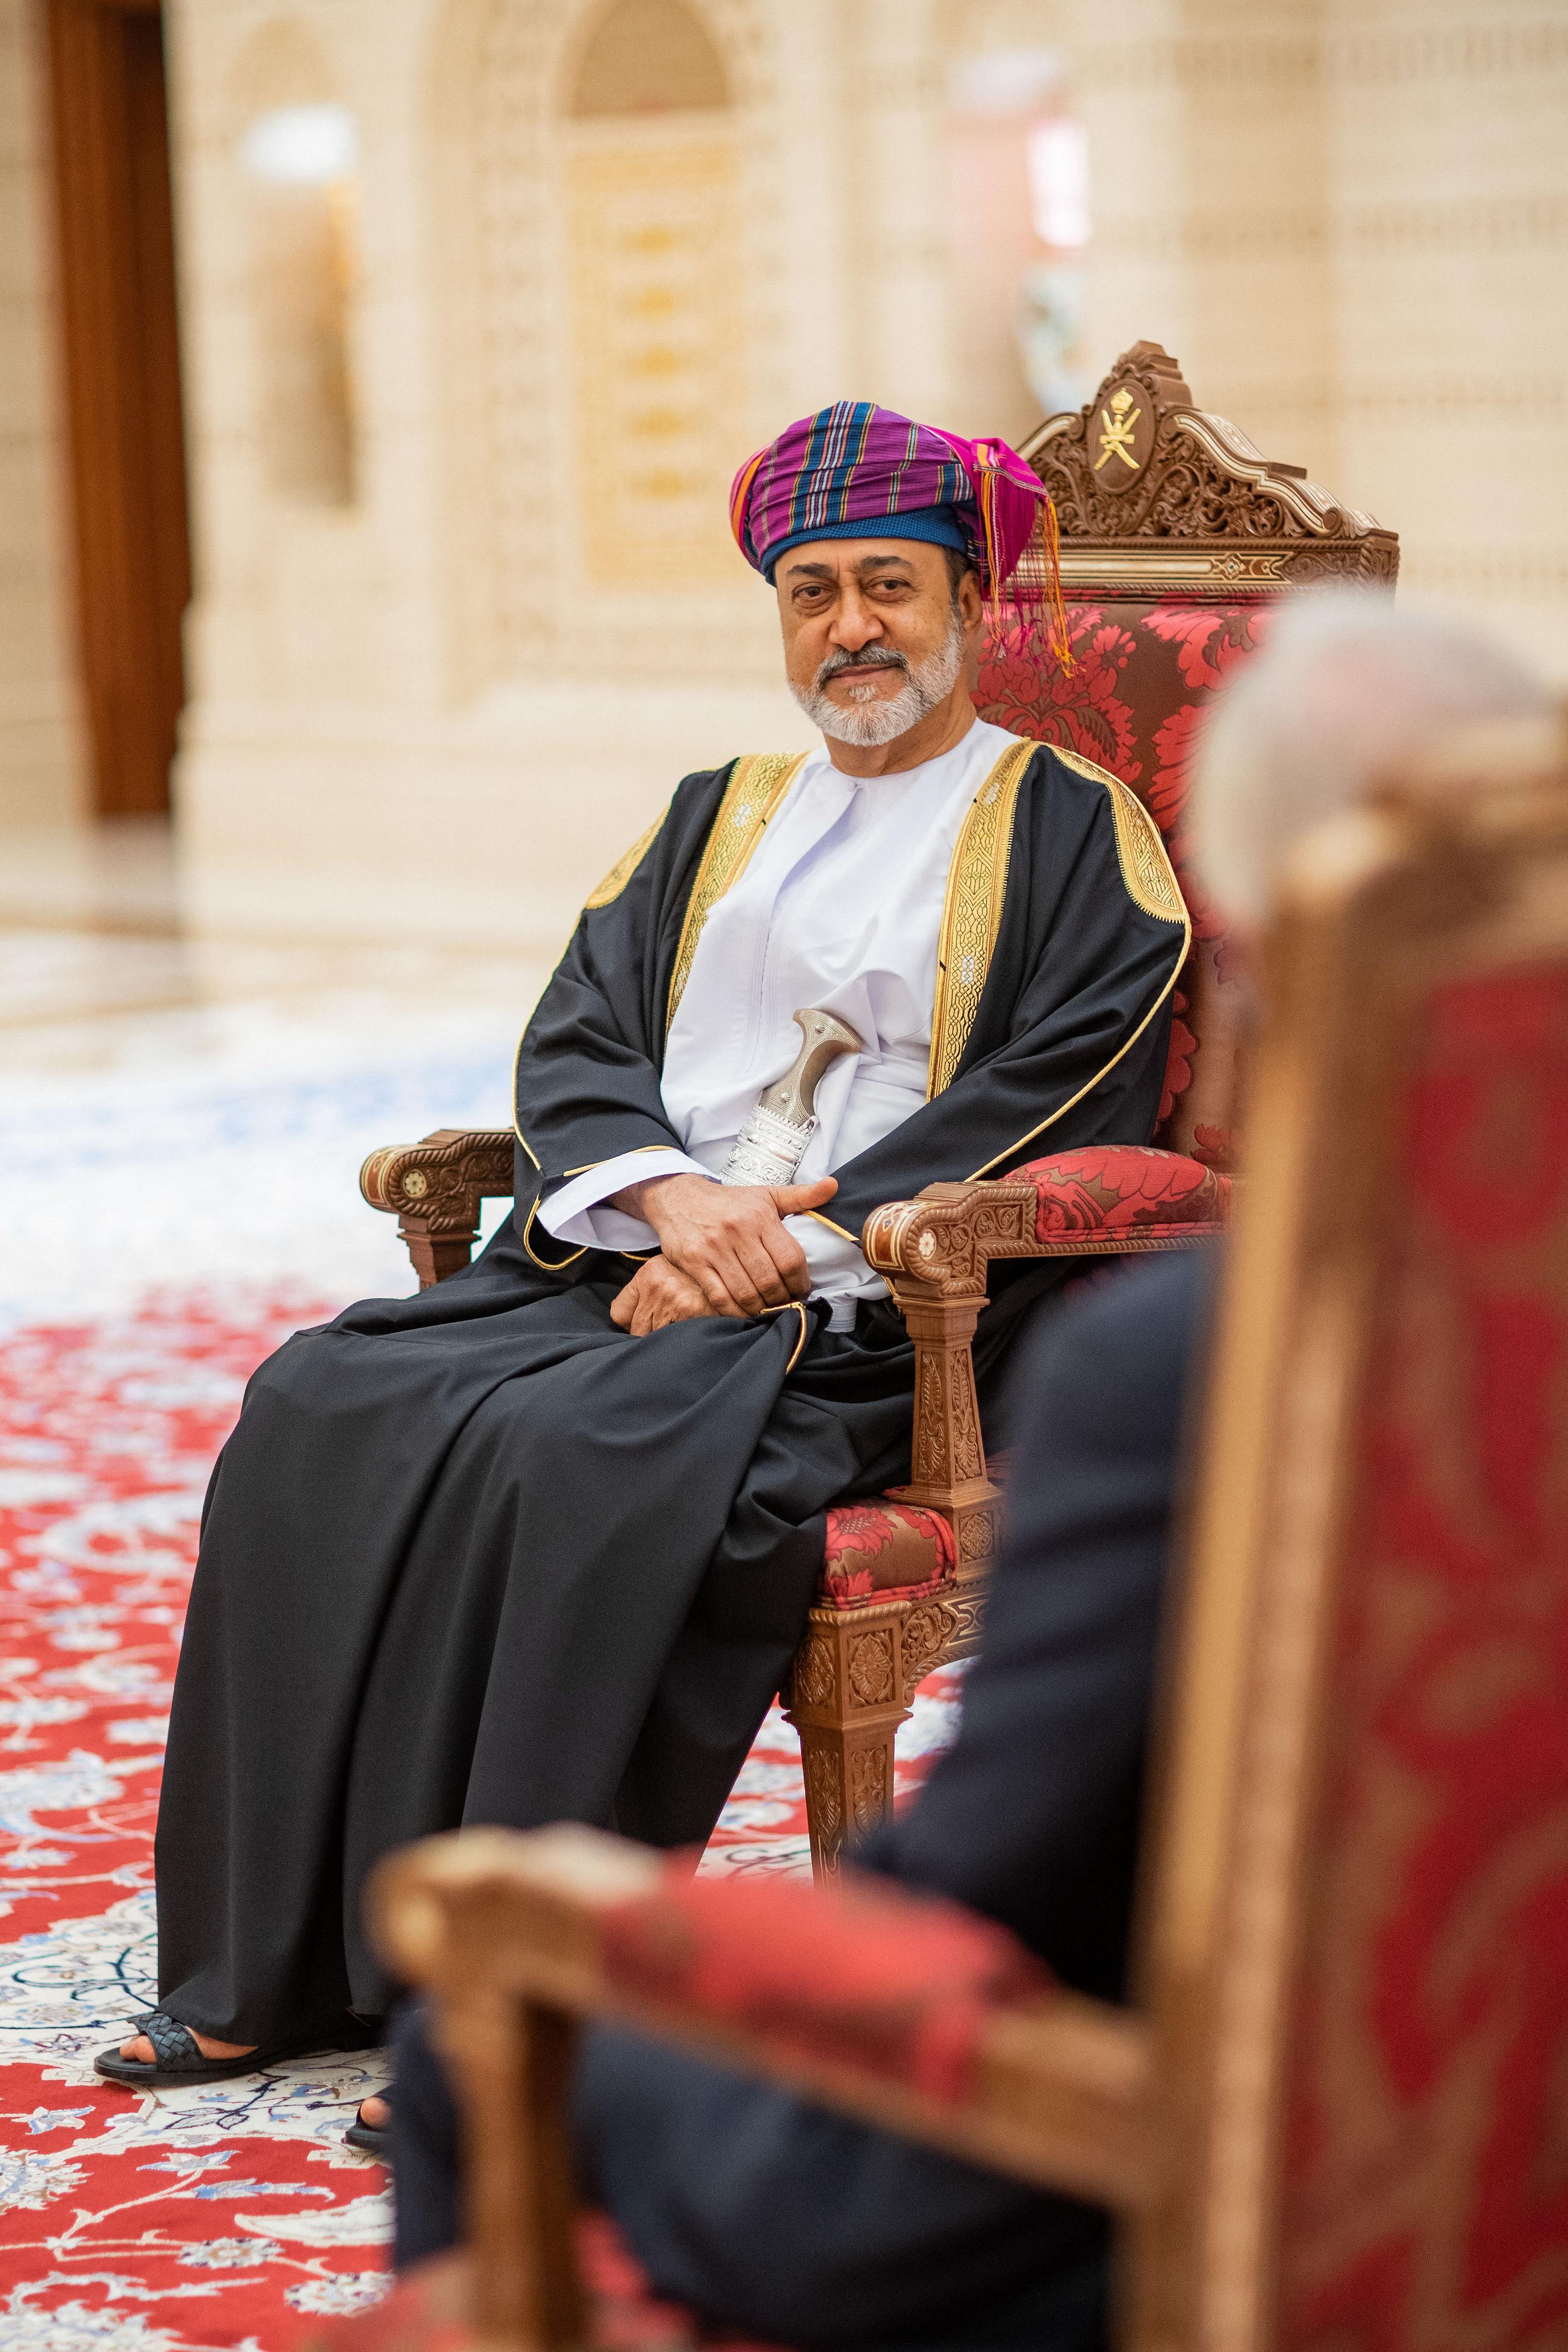 Oman: First Arab leader to Washington in 1938, and due for another visit